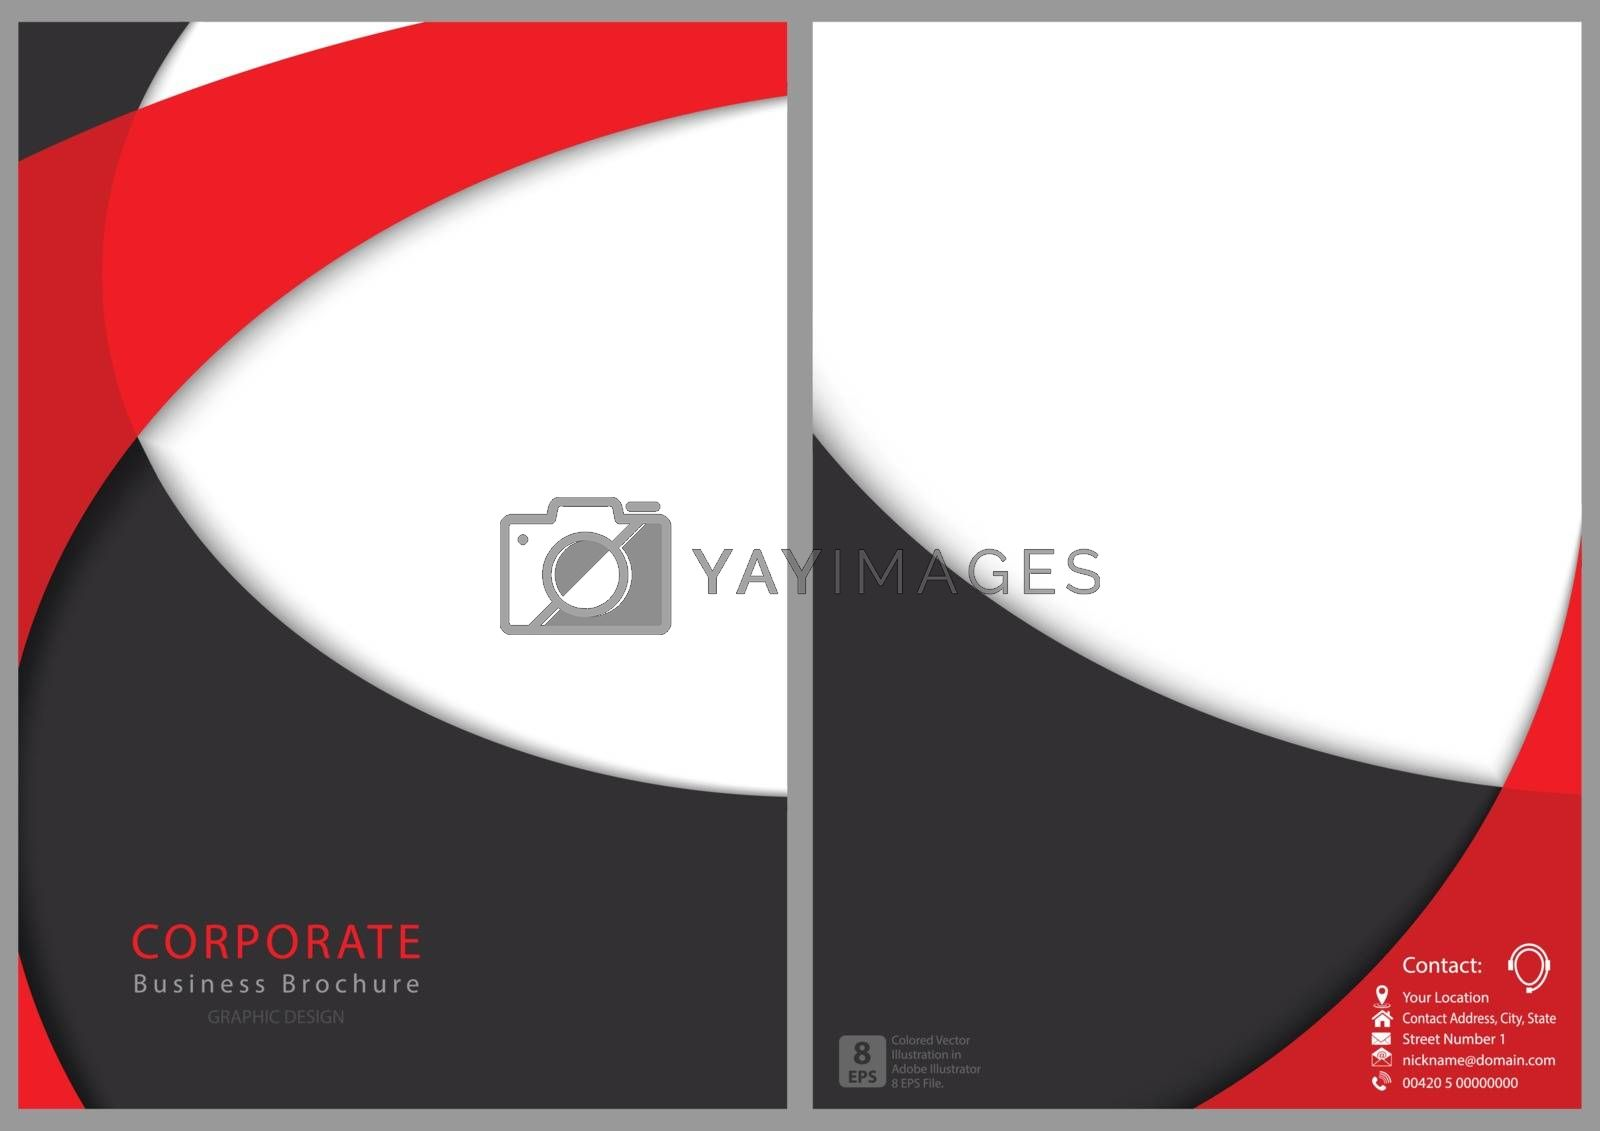 Modern Flyer Template with Curved Shapes - Red and Gray Layered Shapes with Shadows, Vector Illustration